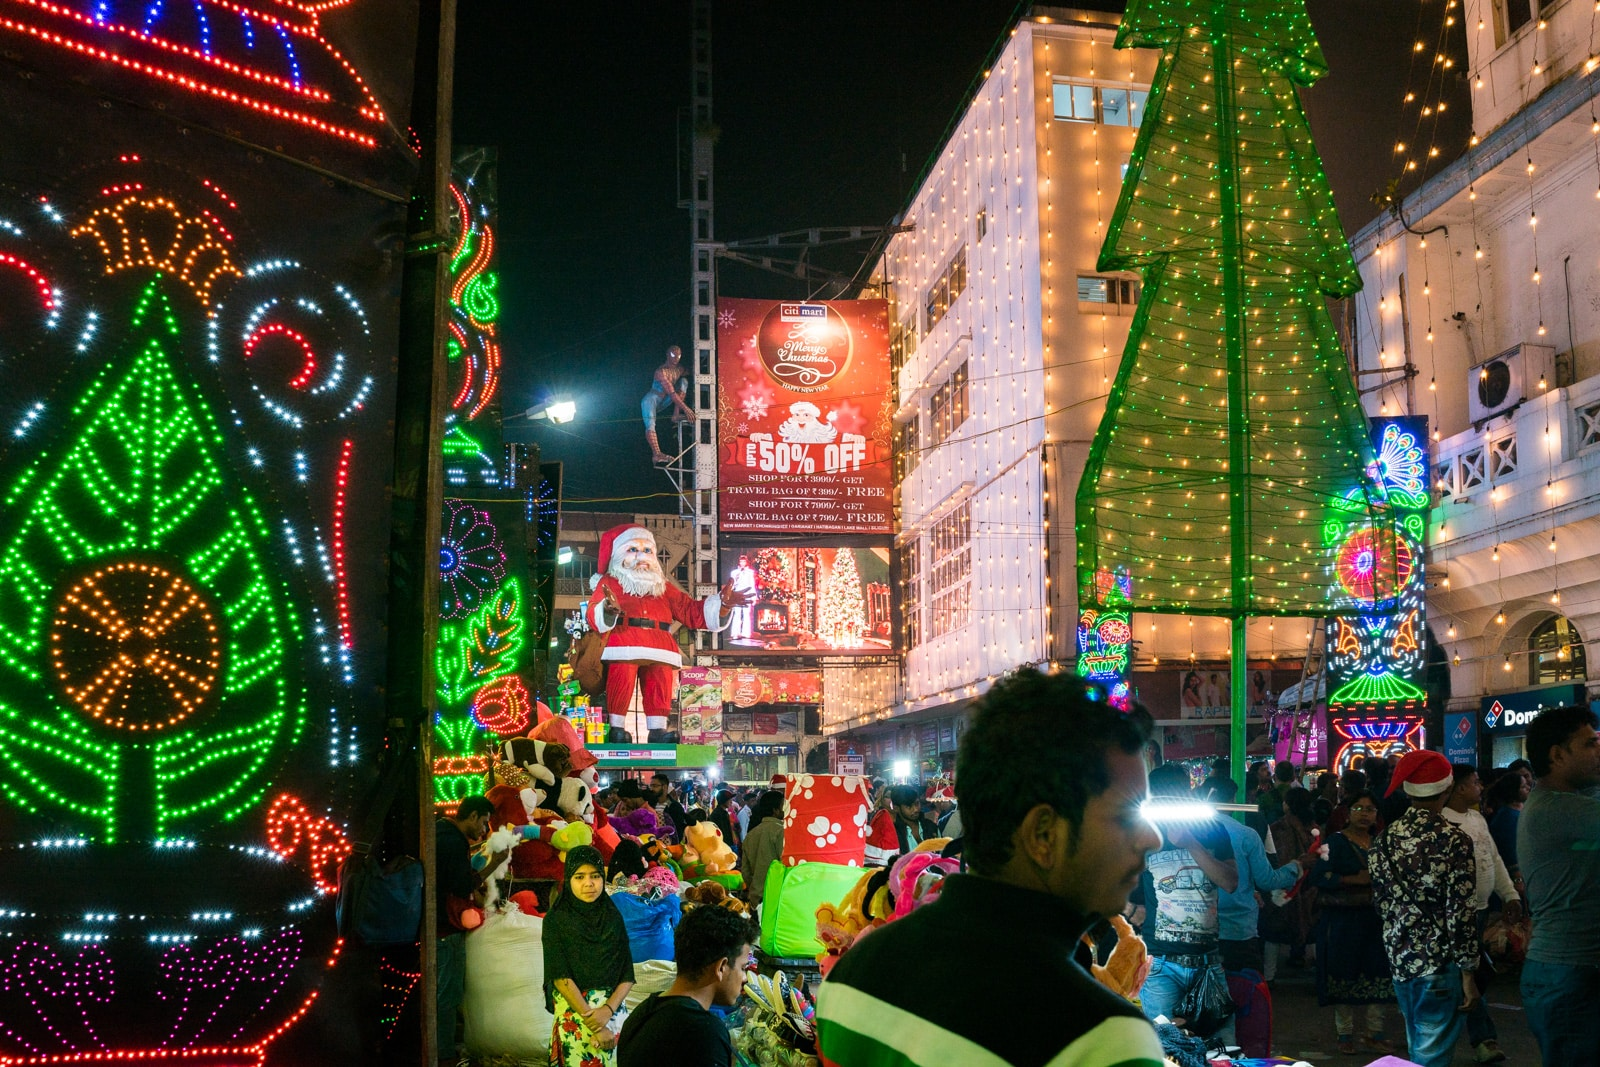 Celebrating Christmas in Kolkata, India - Christmas carnival in New Market - Lost With Purpose travel blog